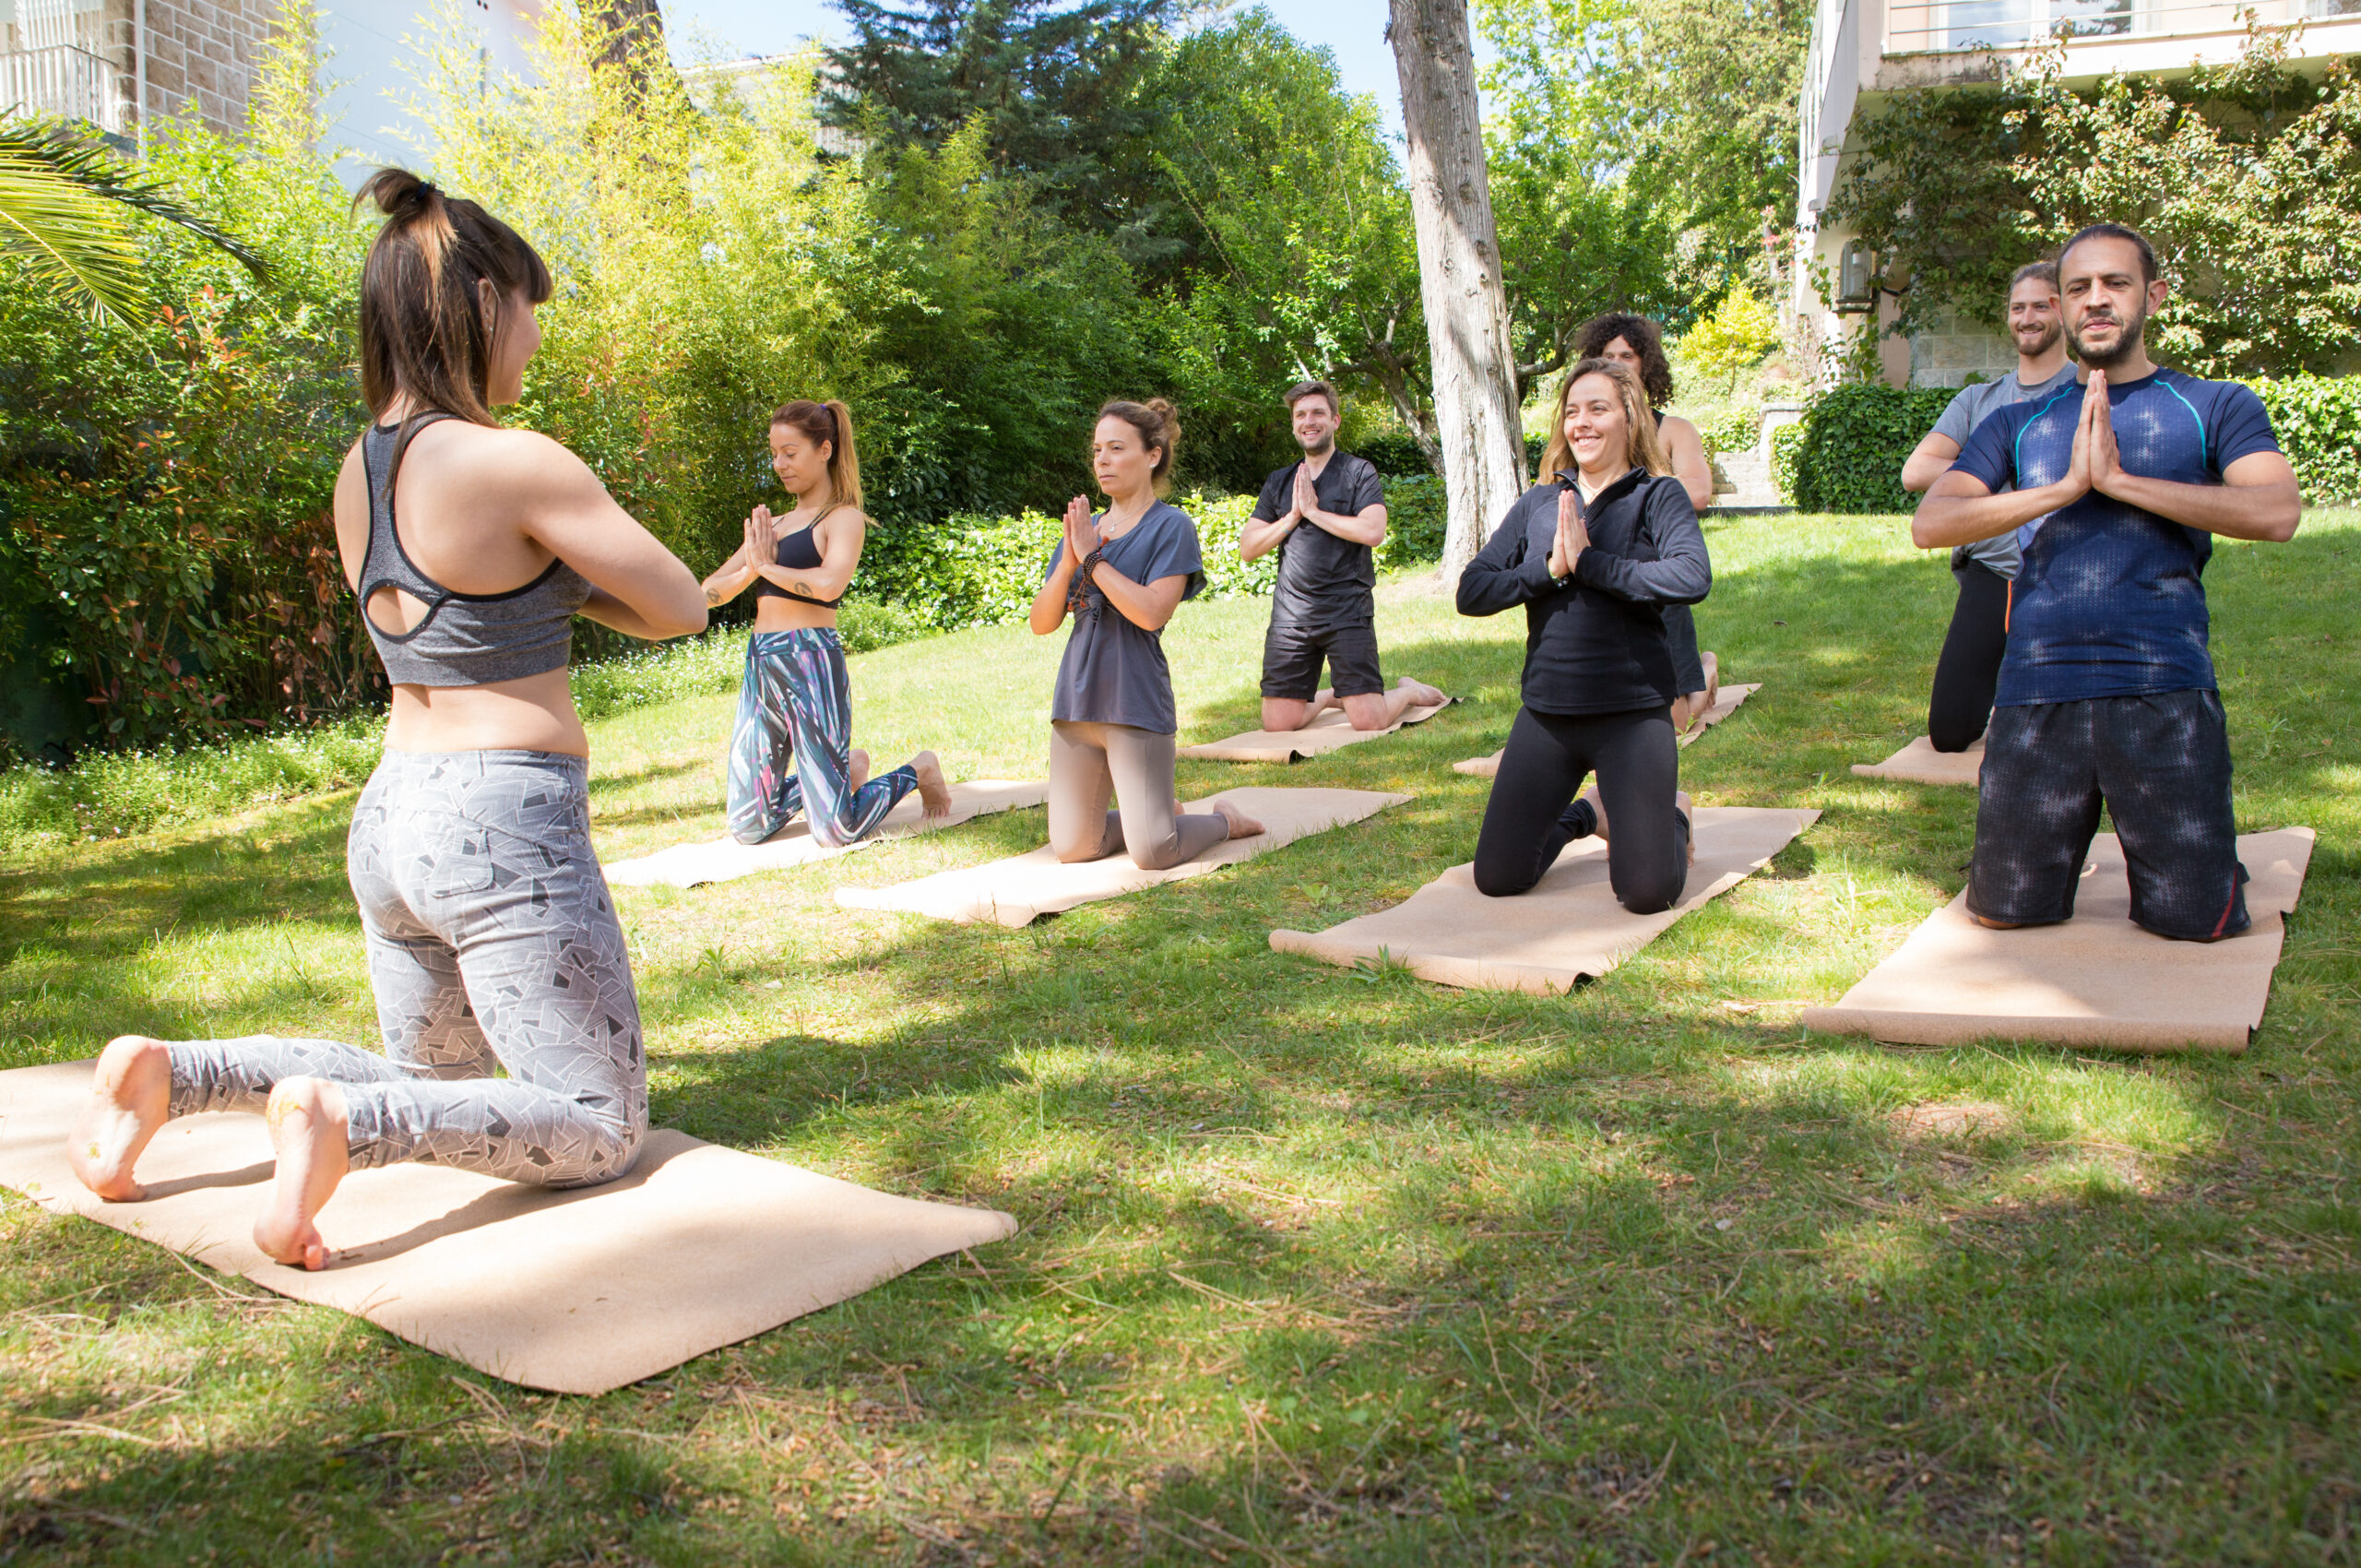 Peaceful people enjoying yoga practice on grass. Men and women kneeling on mats and put hands together in Namaste gesture. Meditation concept